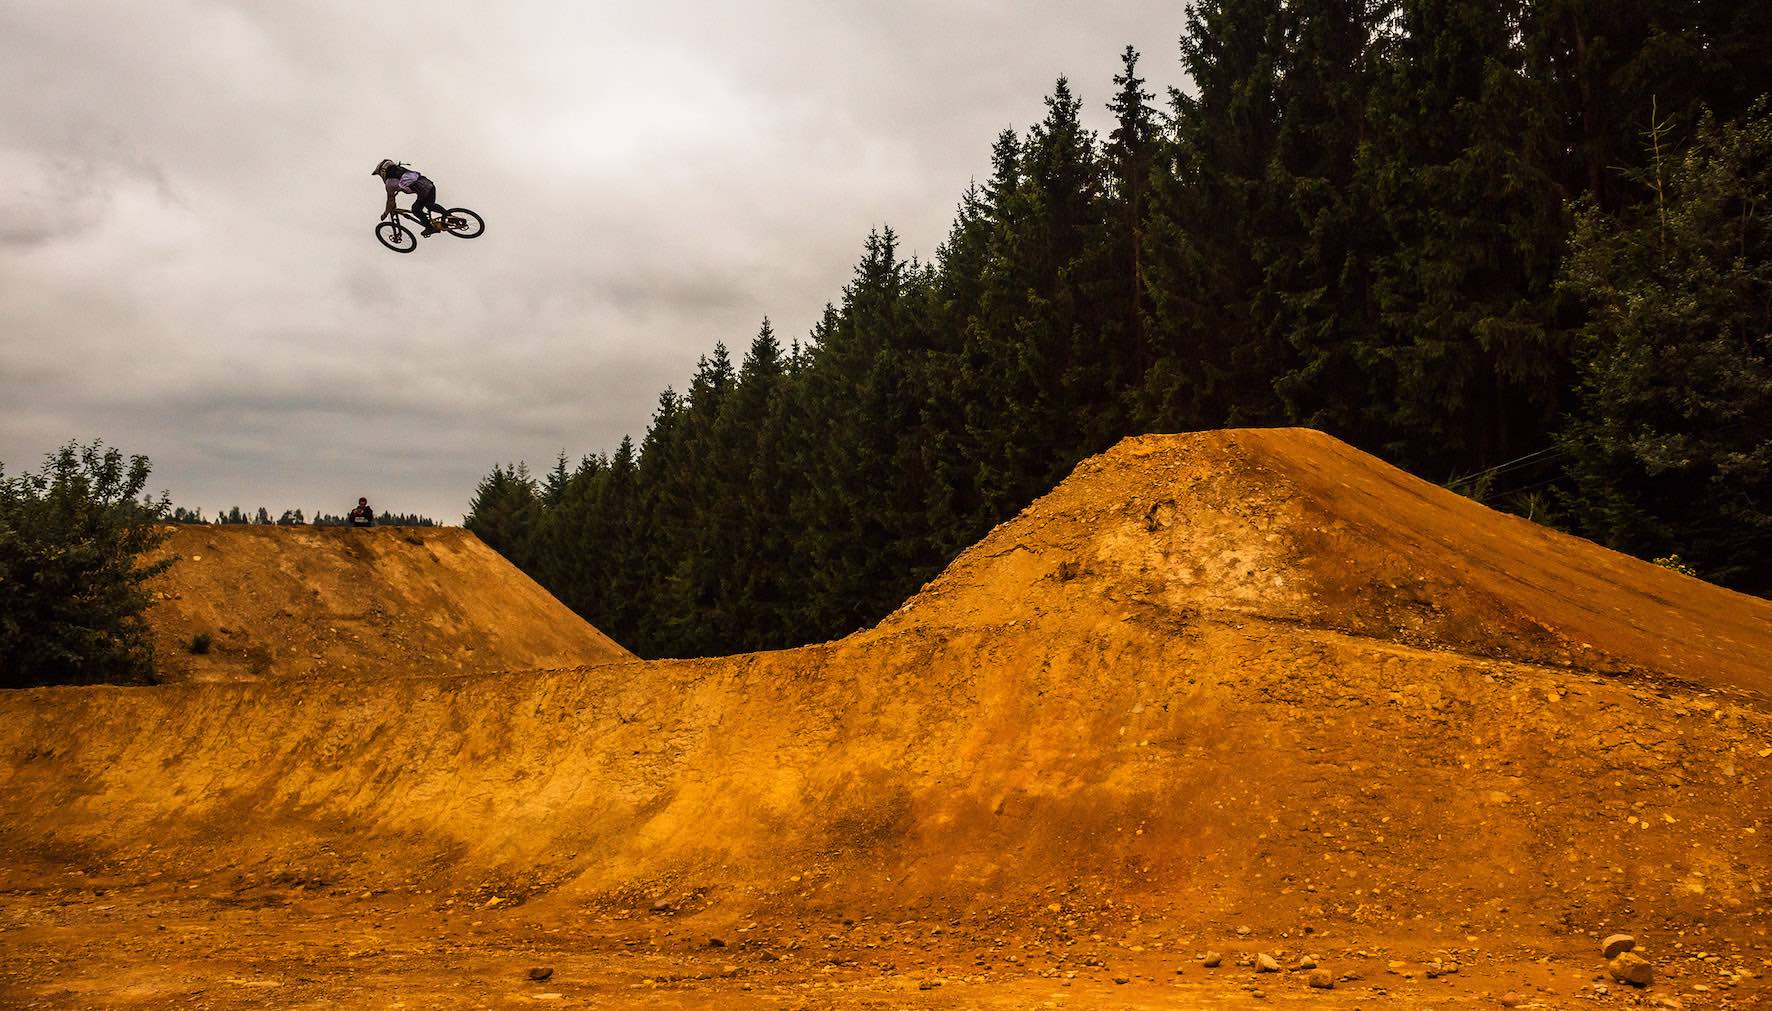 Freeride MTB action at its best at the 2019 Loosefest XL event